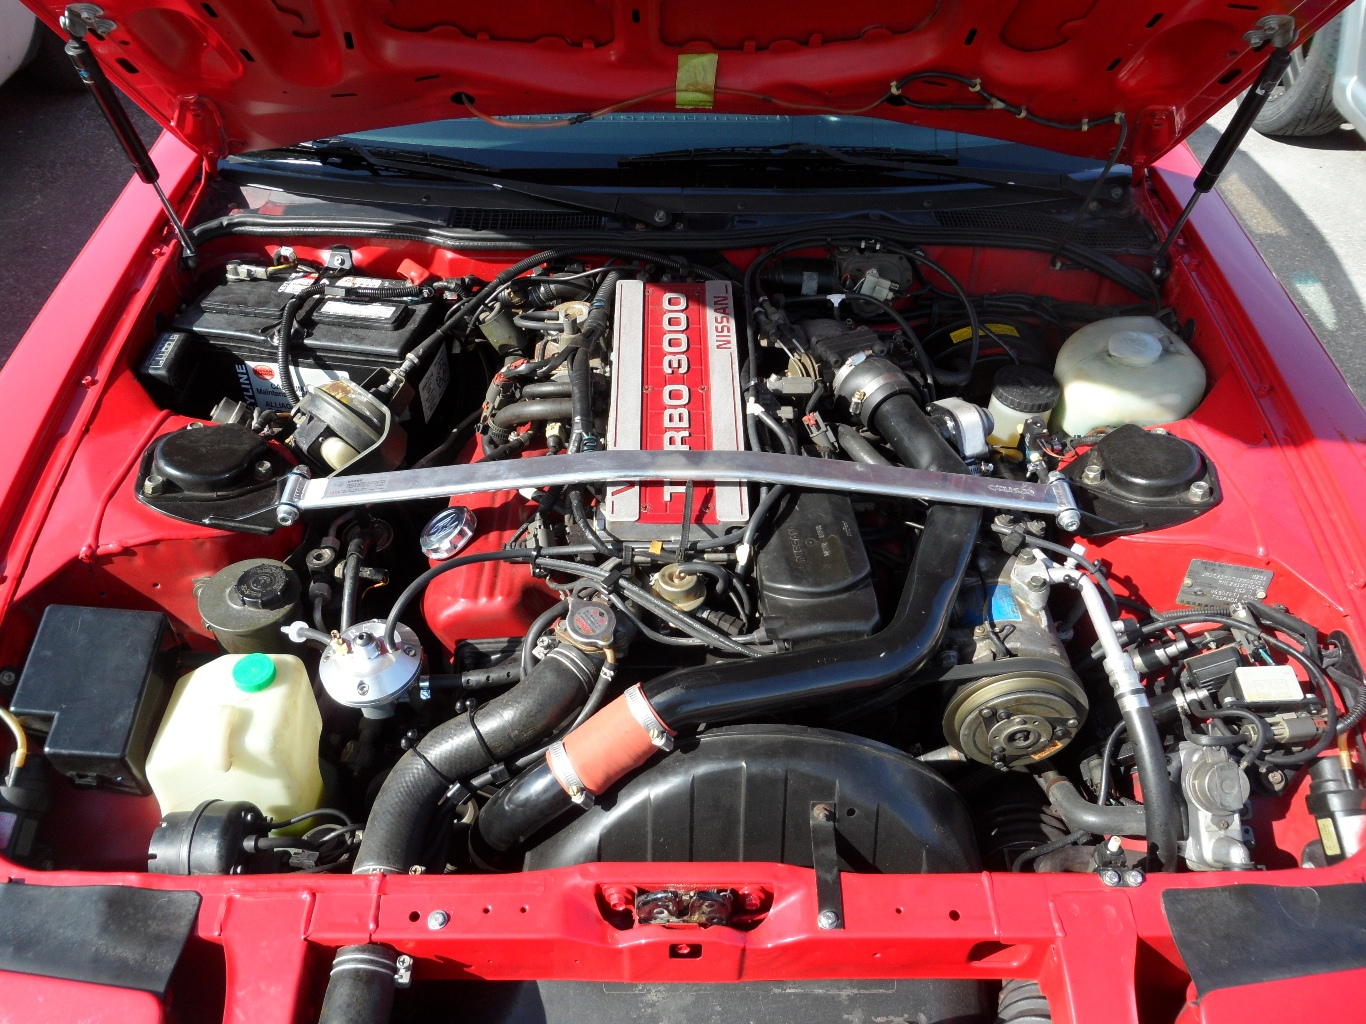 performance upgrades g35, g37, 370z, 350z, 300zx, 280zx, 280z, 240z Nissan Pulsar Engine 1988 300zxt engine mods